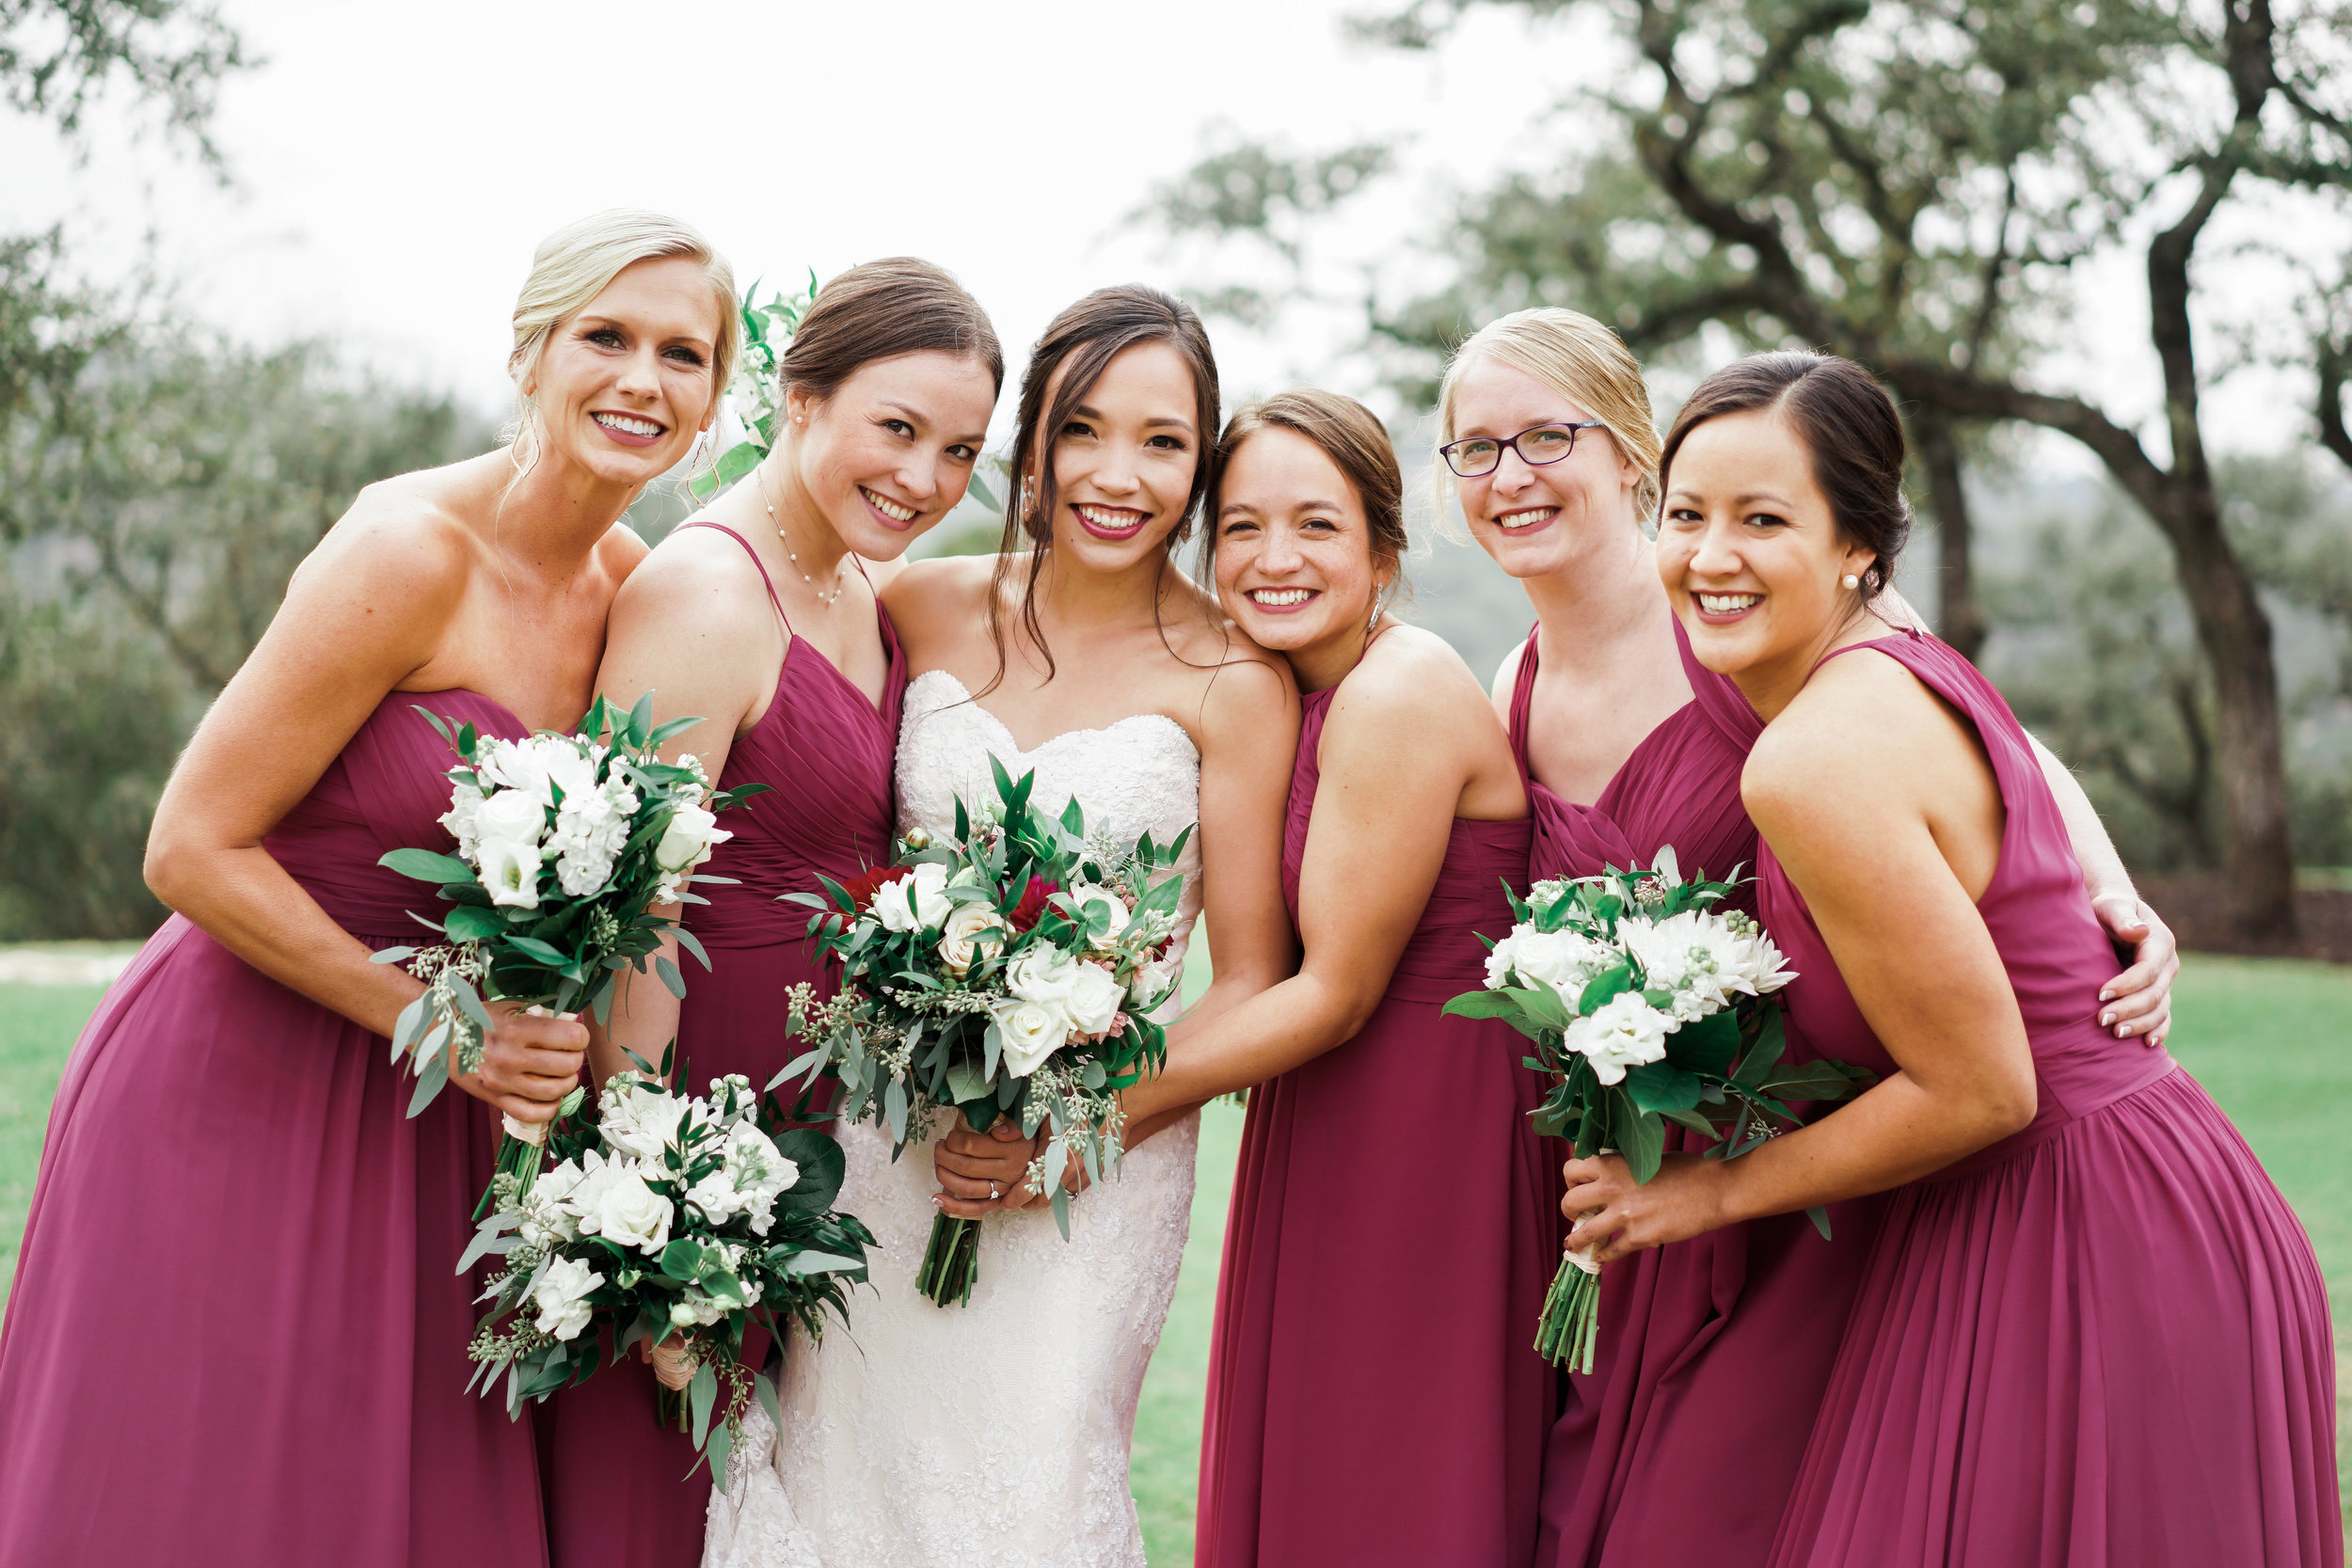 Beautiful bridesmaids at Canyonwood Ridge! Such a perfect wedding venue for the winter!